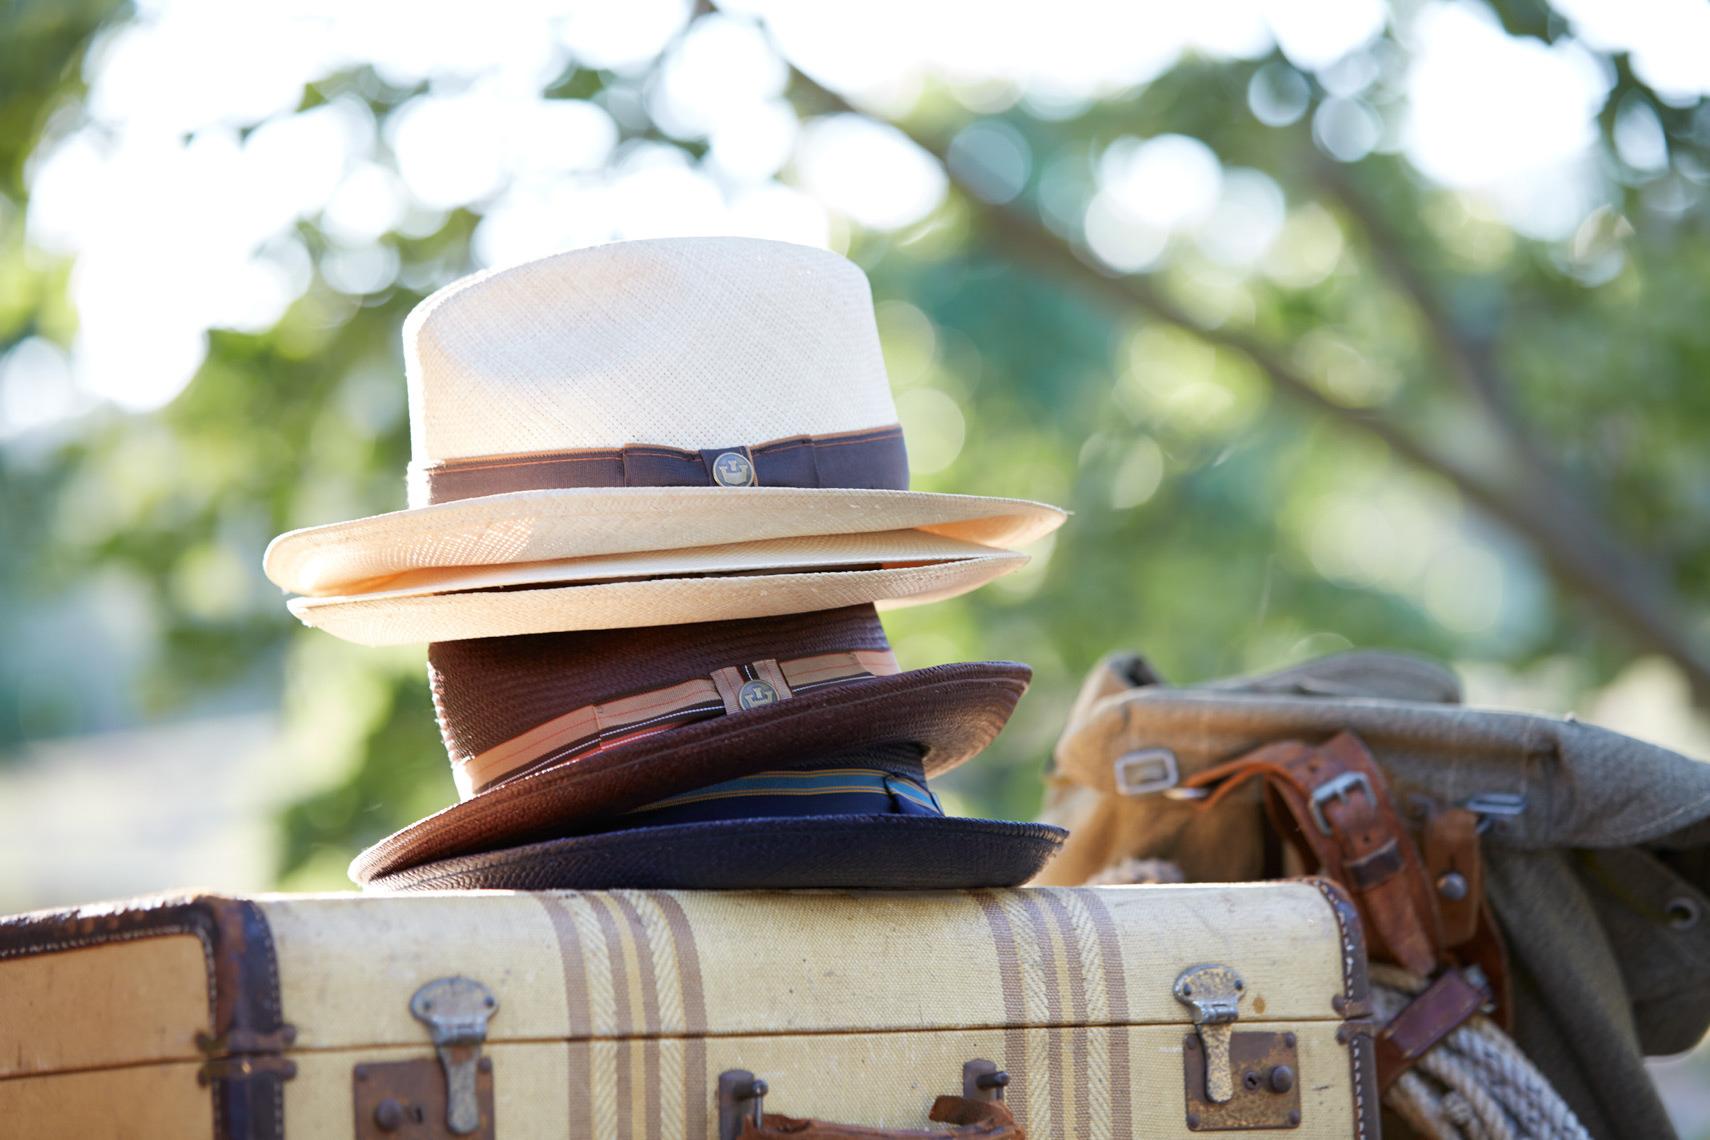 stack of white and brown hats on tan suitcase with backpack